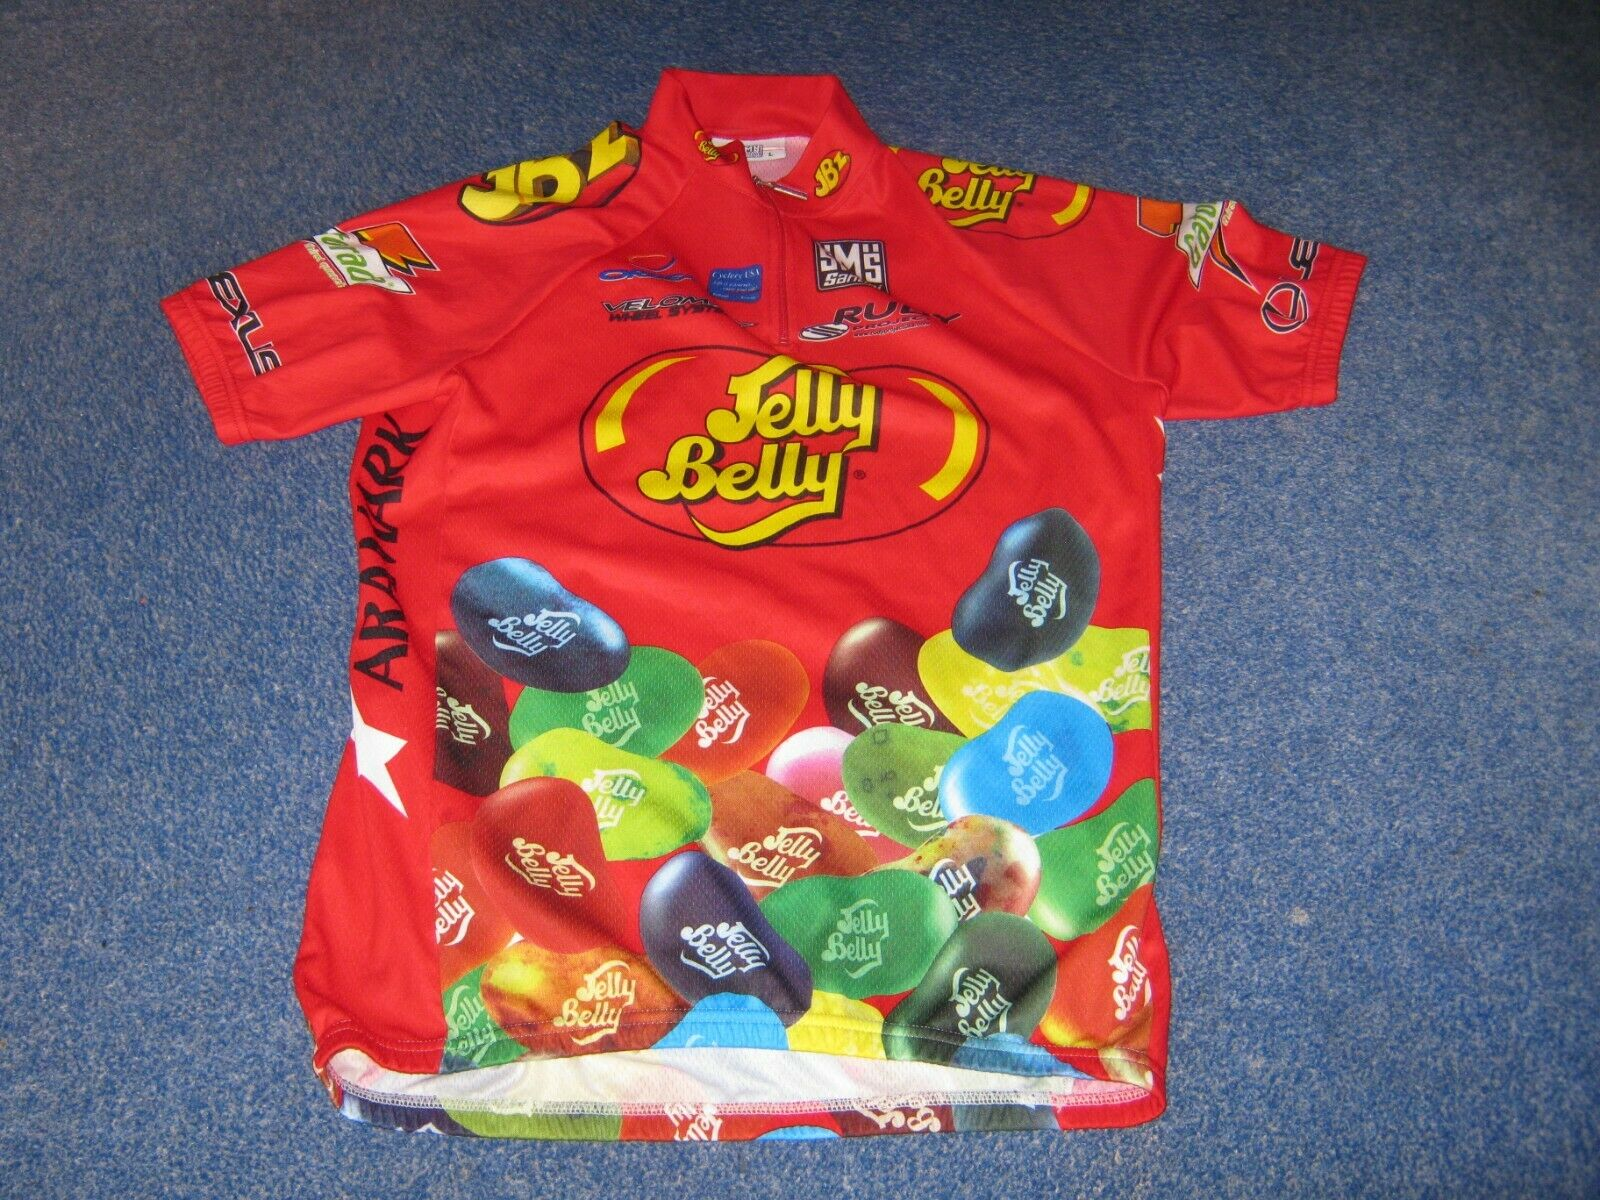 Jelly Belly Santini Italian cycling jersey [48 L]